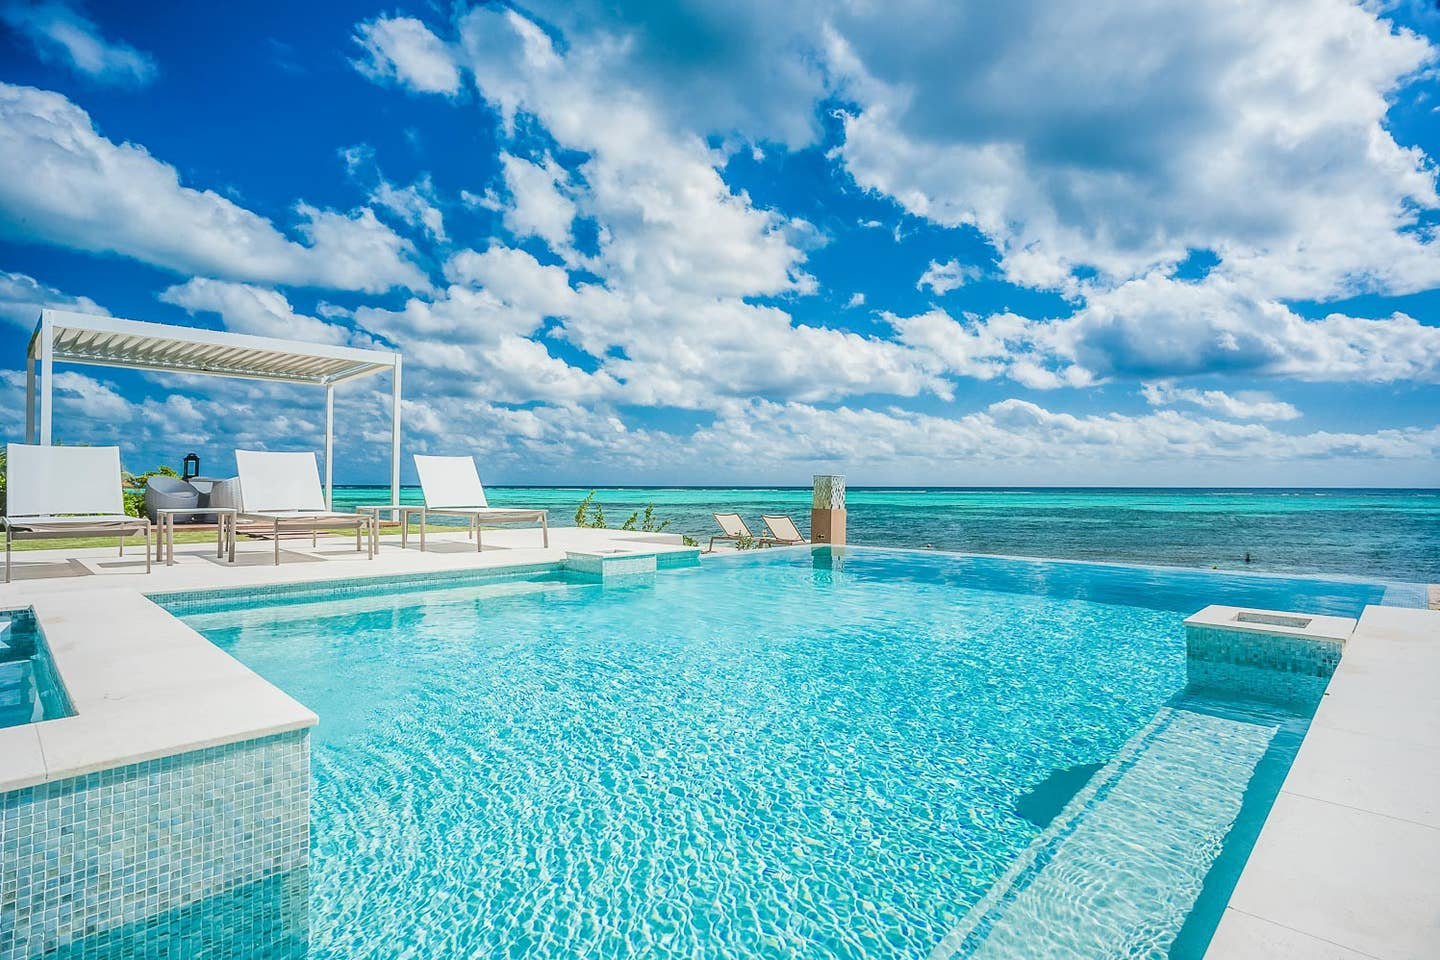 An outdoor pool overlooking a clear blue ocean